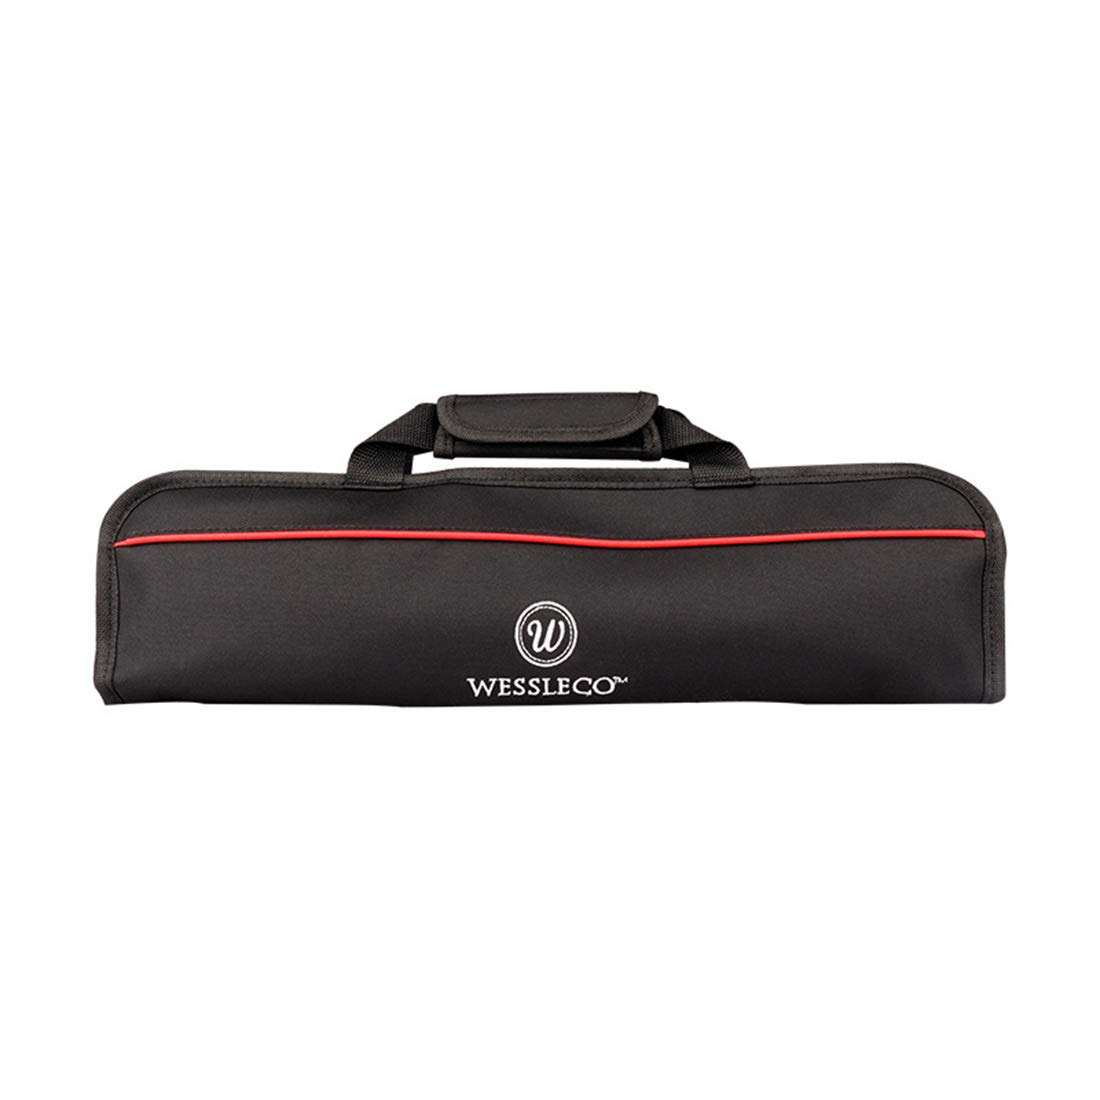 Surrui Knife Roll Bag Storage Bag 5 Pockets Knife Carrier Storage Tote for Culinary Student Professional Chef Enthusiasts Men Women Red